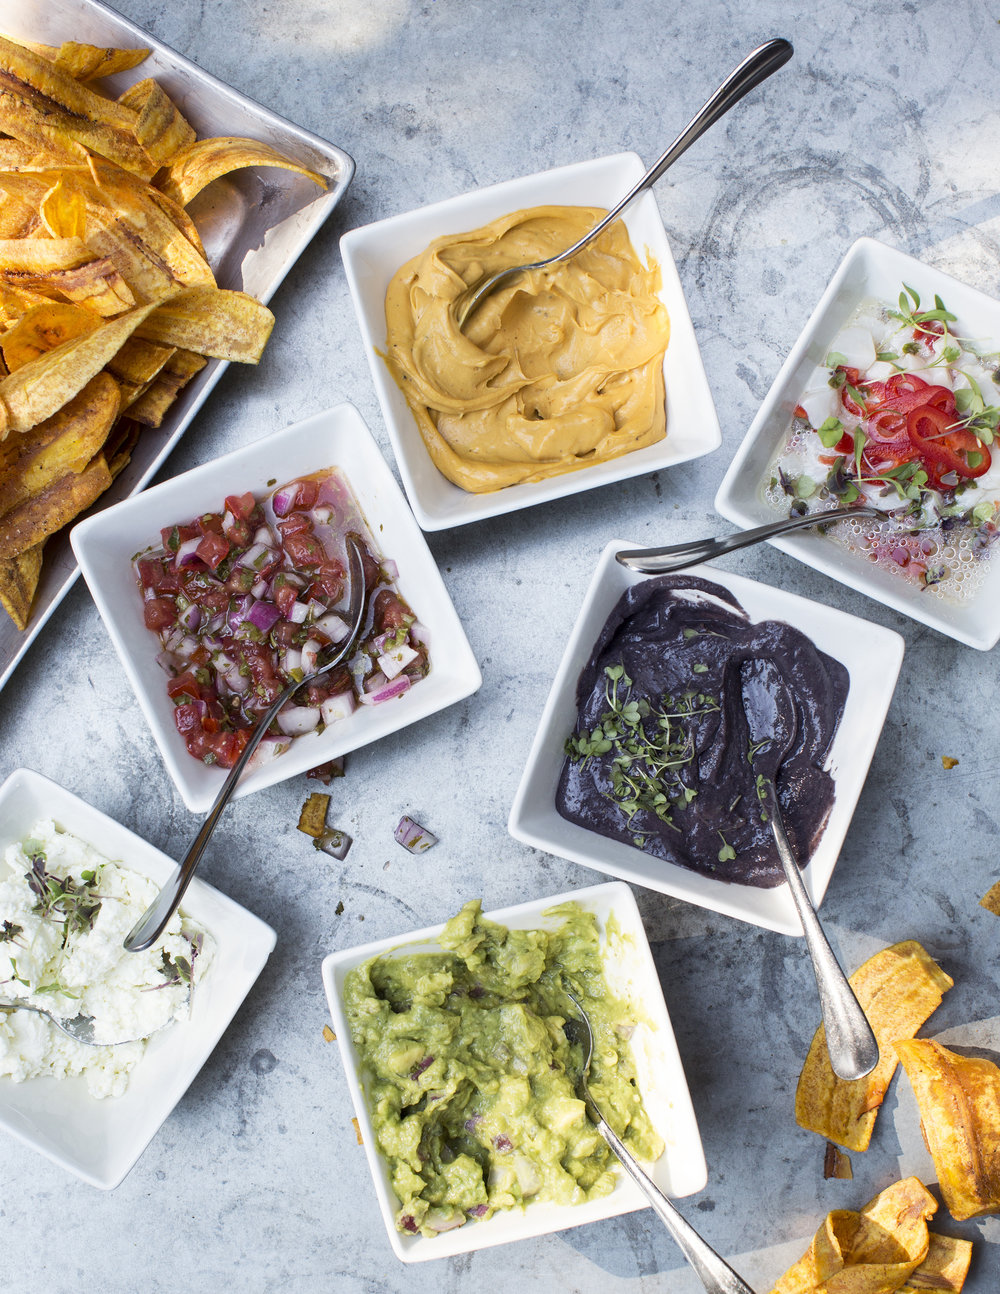 Burggraaf_Charity-Seattle_Food_Photographer-Plantains_Dip-EdibleSeattle.jpg